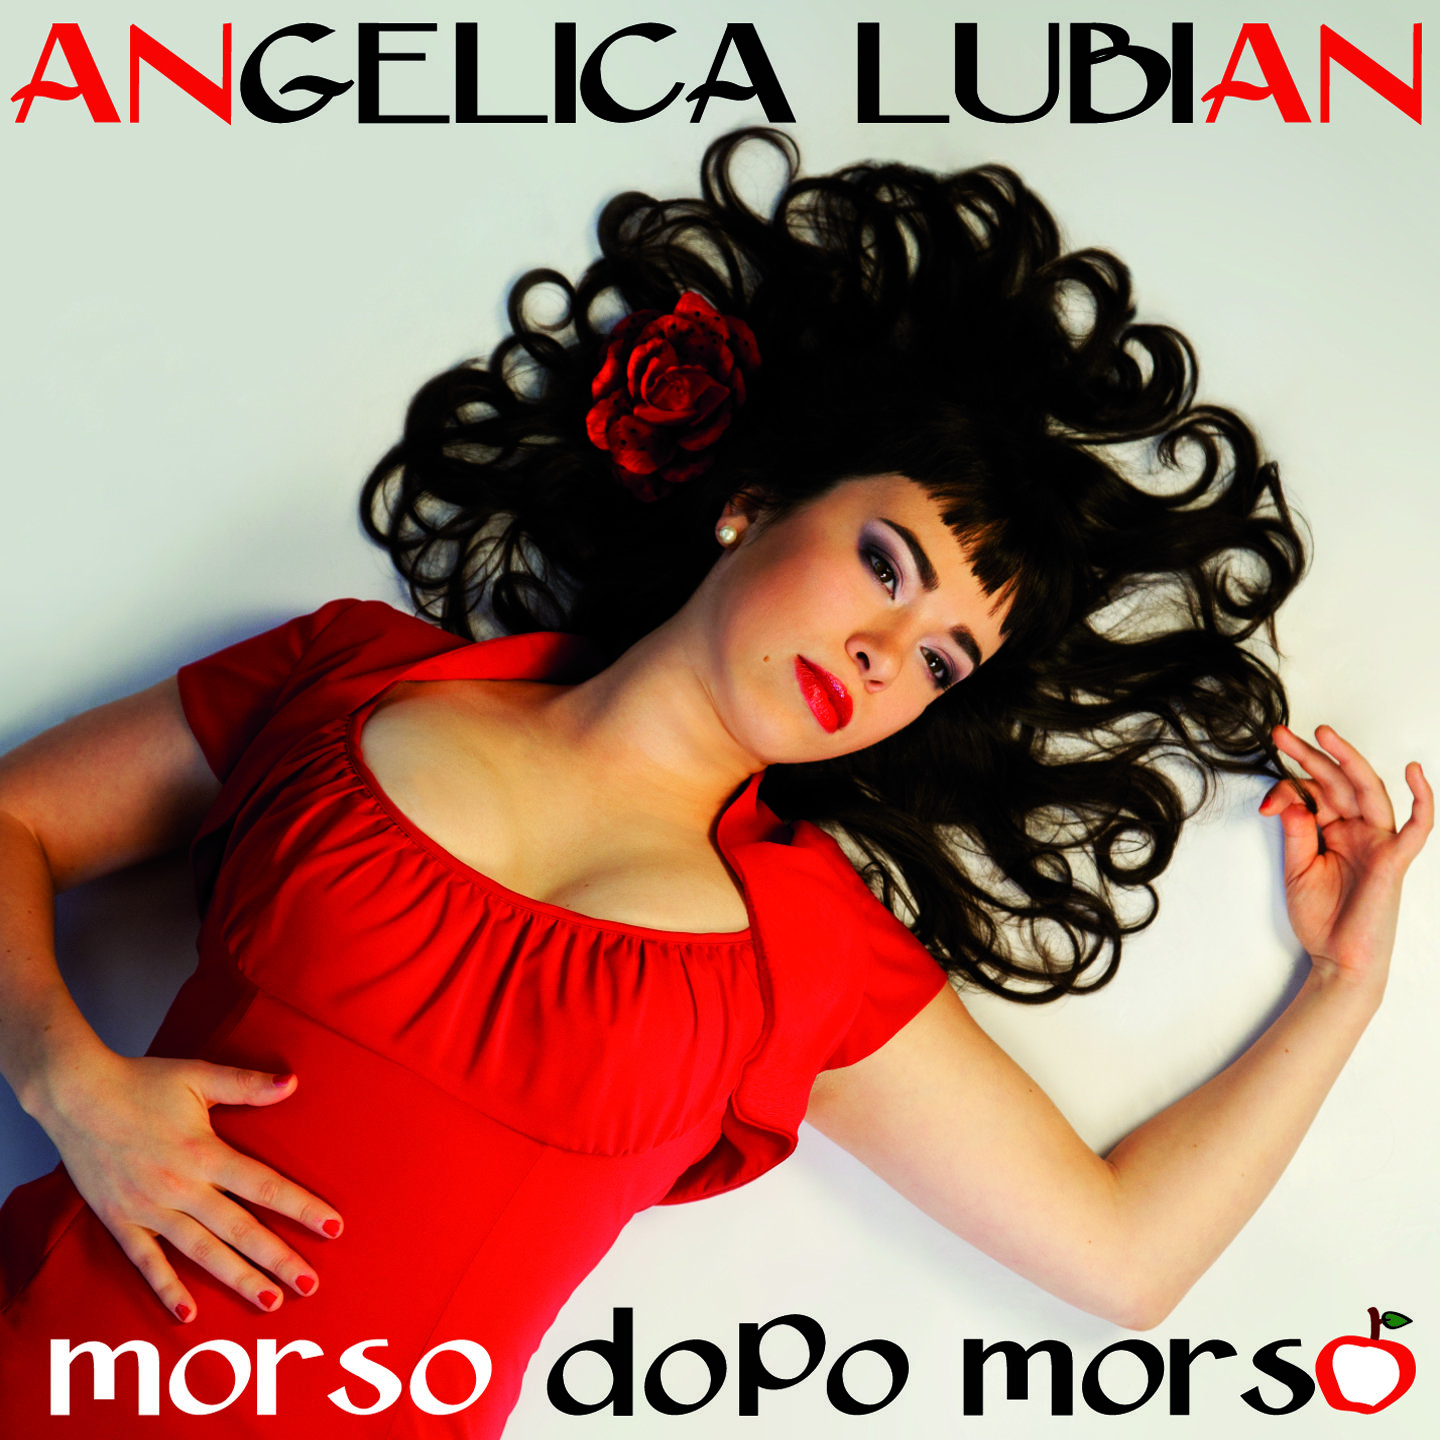 Morso dopo morso - Digital Download MP3 + PDF